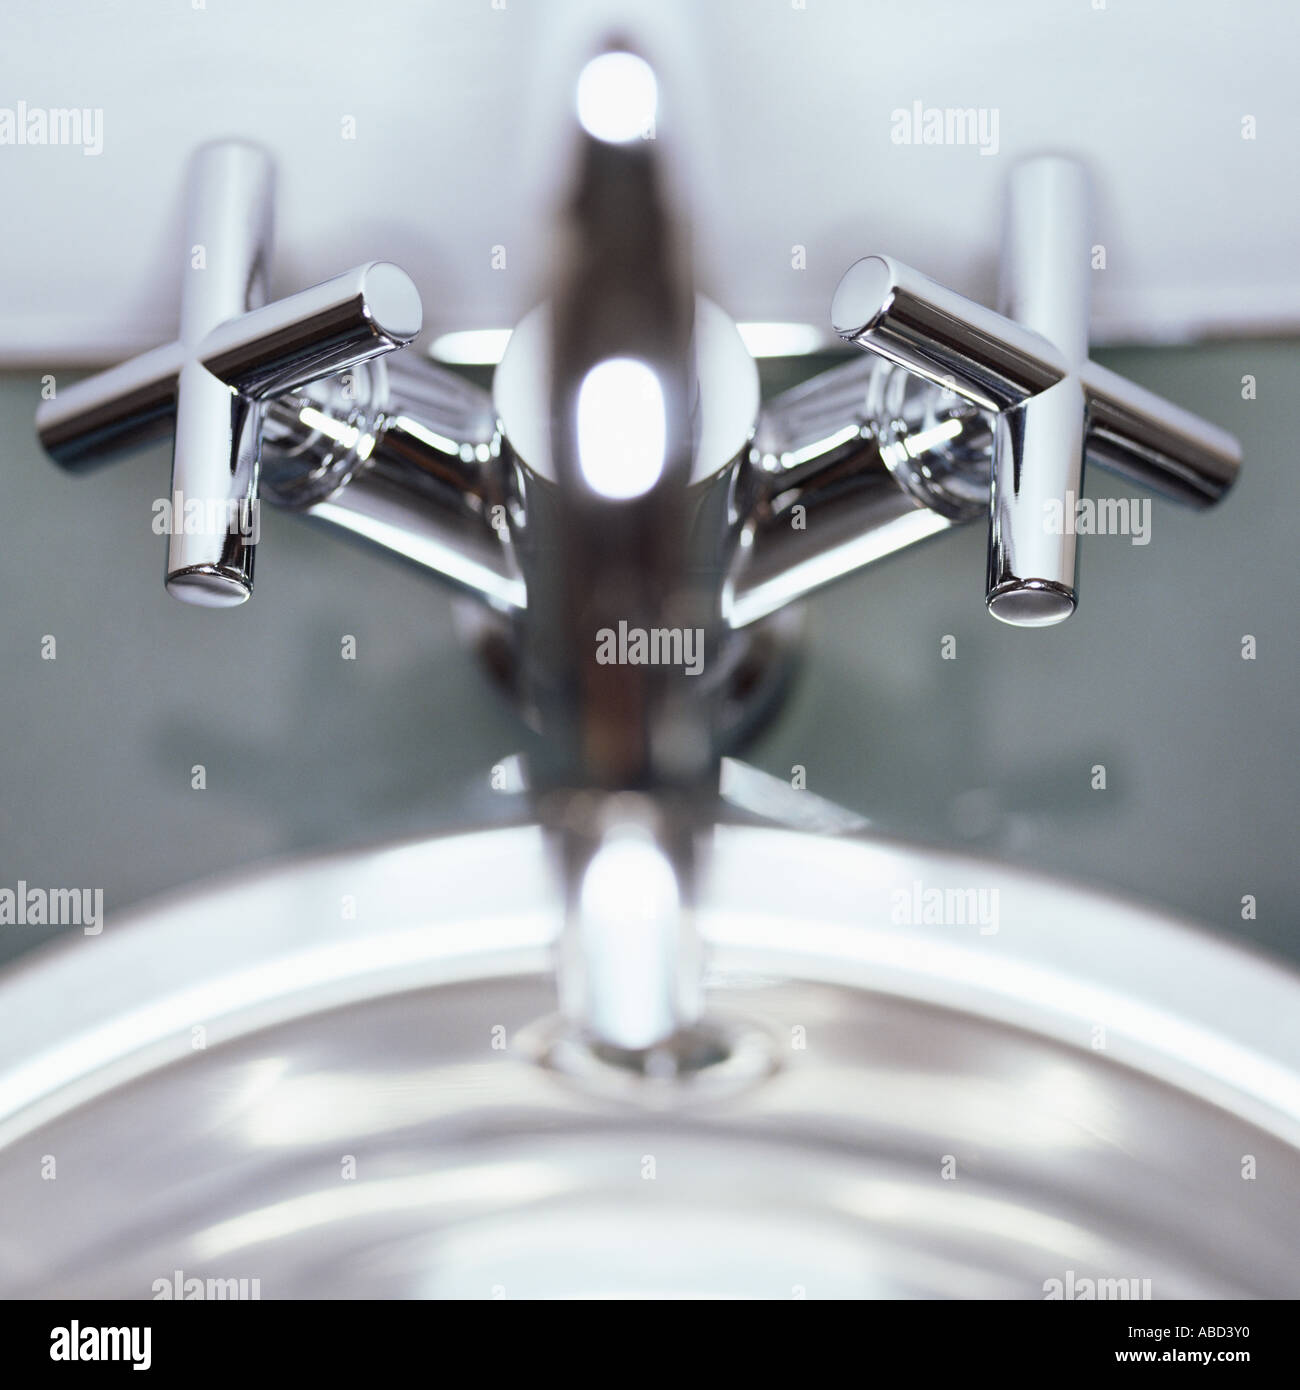 Chrome taps - Stock Image